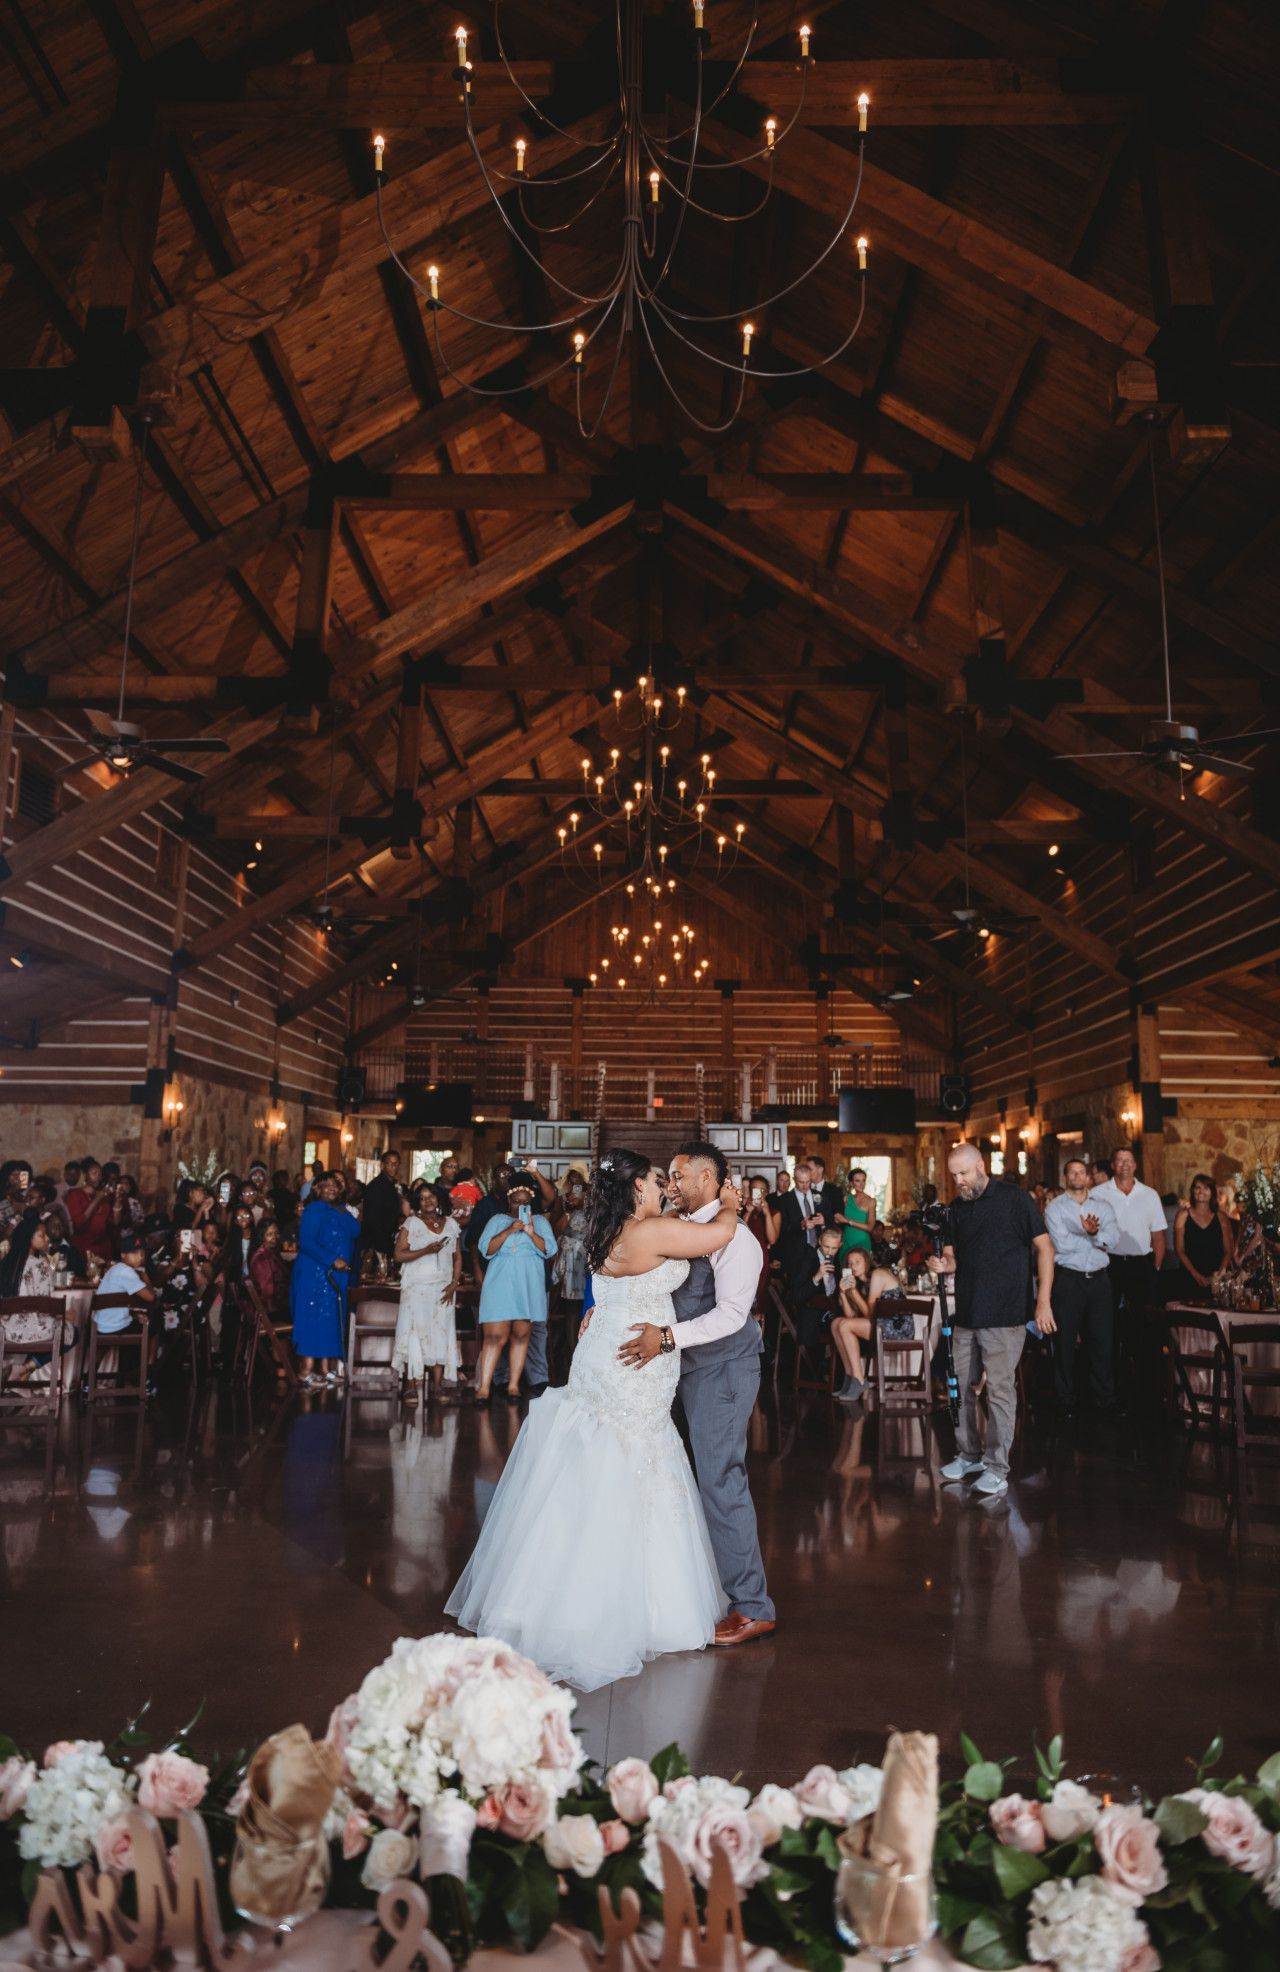 Best First Dance Wedding Photos Wedding Dance Best Wedding Venues In Dallas Tx Best Dfw Wedding Venues Dallas Wedding Reception Wedding Reception Hall